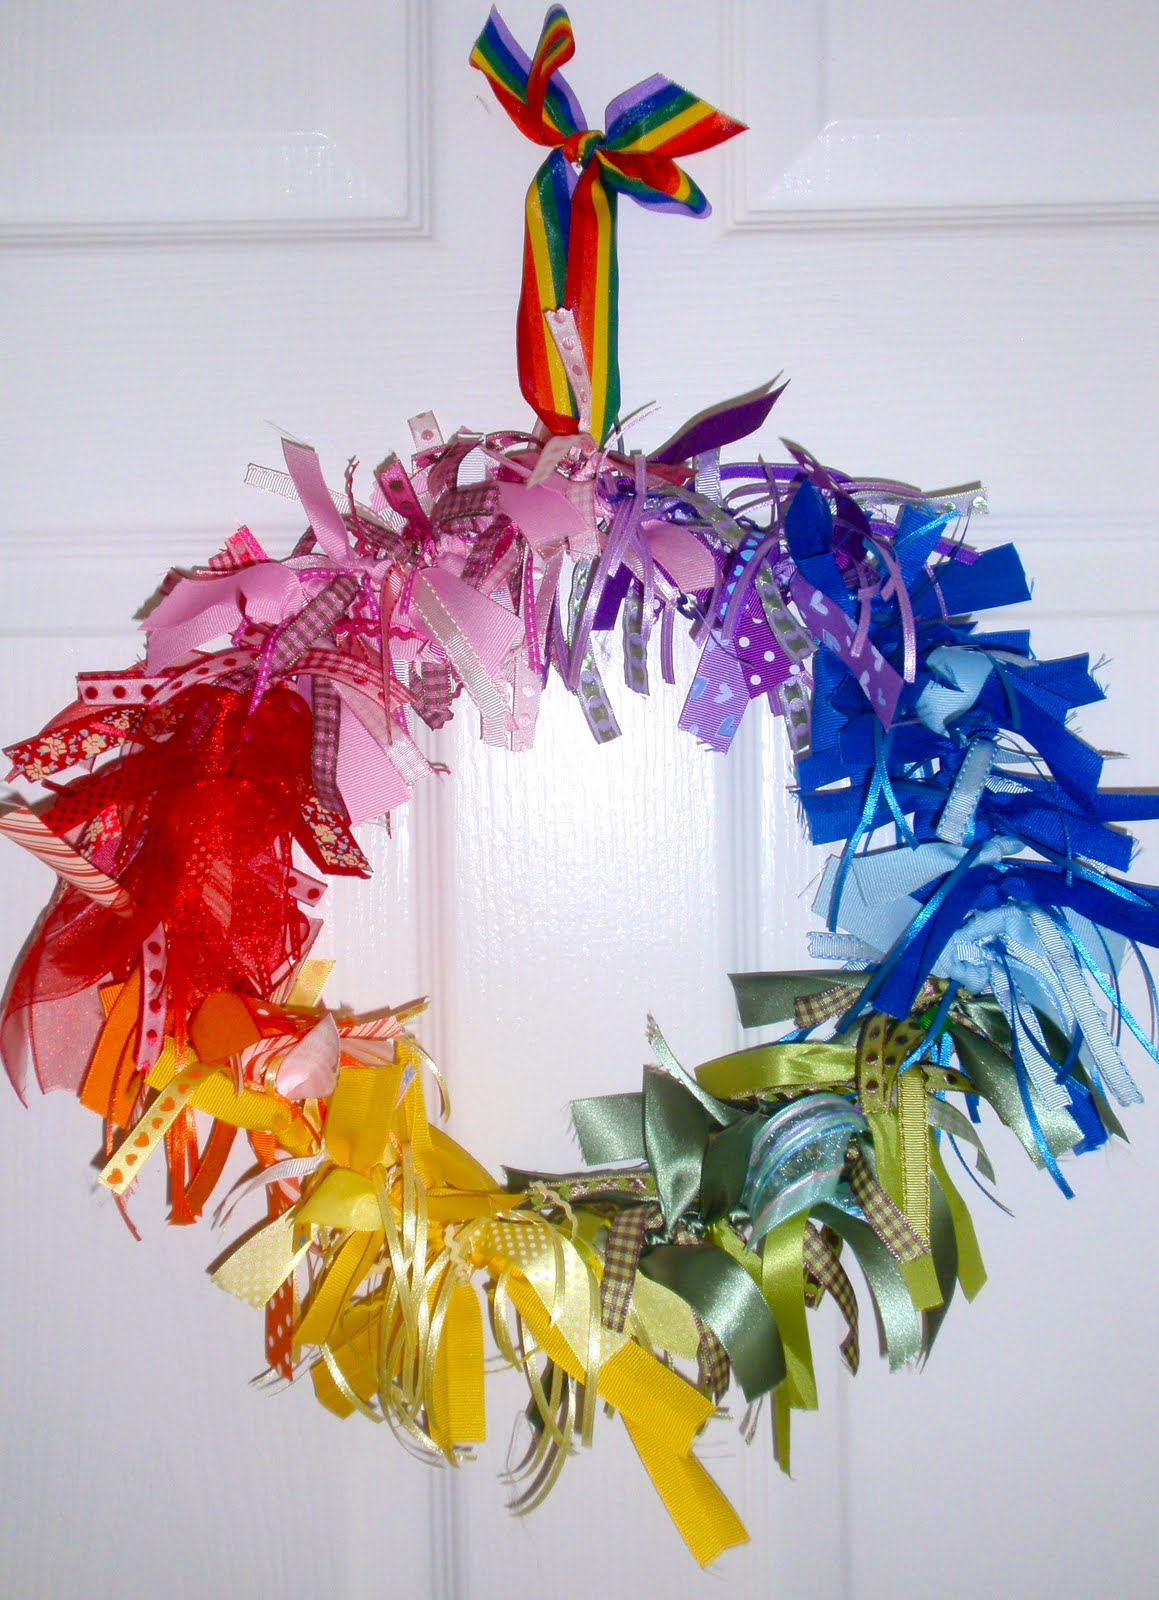 DIY Tutorial From A Catch My Party Member - How to Make a Ribbon Wreath